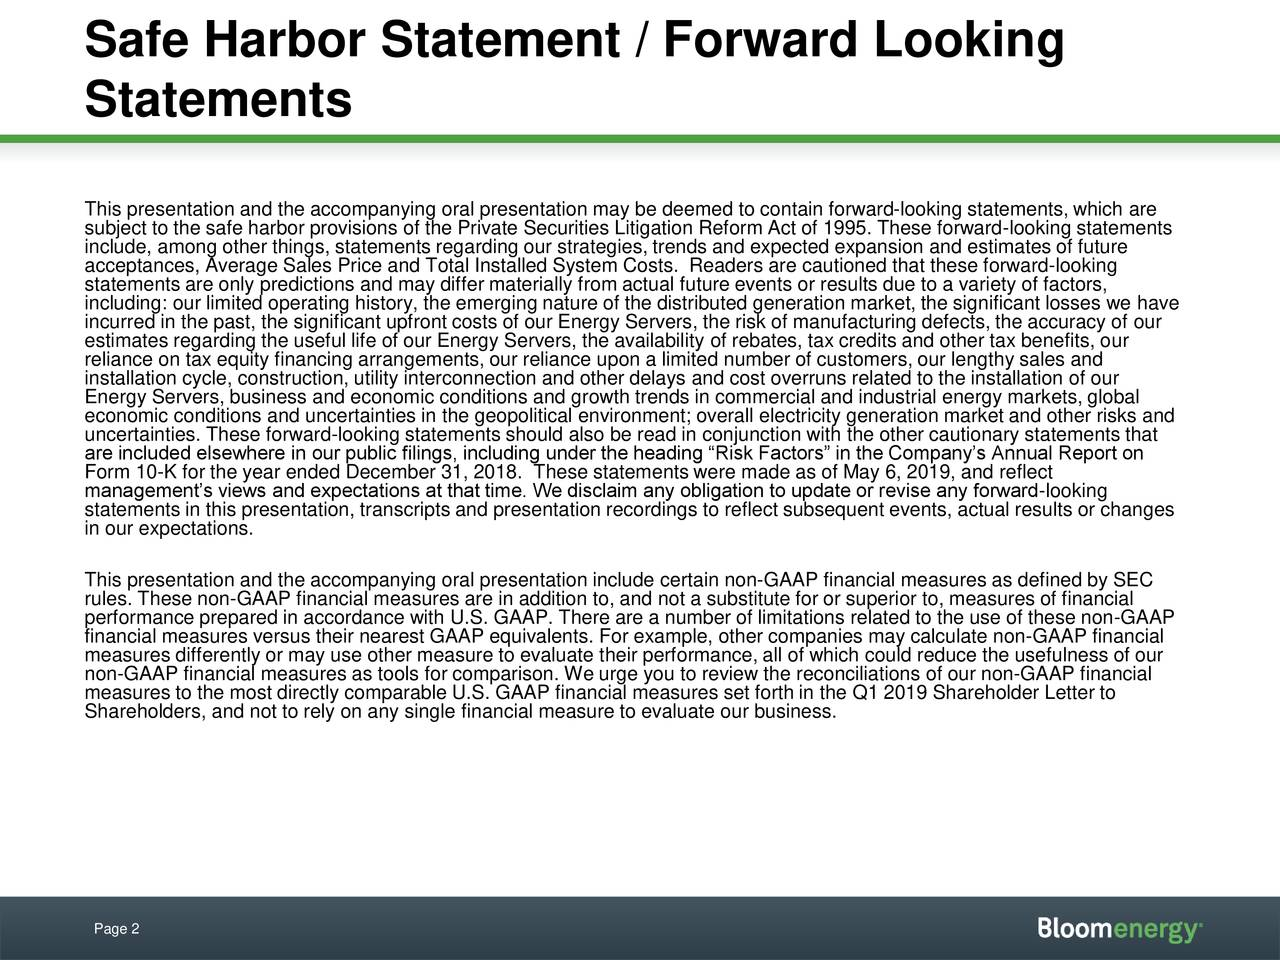 Statements This presentation and the accompanying oral presentation may be deemed to contain forward-looking statements, which are subject to the safe harbor provisions of the Private Securities Litigation Reform Act of 1995. These forward-looking statements include, among other things, statements regarding our strategies, trends and expected expansion and estimates of future acceptances, Average Sales Price and Total Installed System Costs. Readers are cautioned that these forward-looking including: our limited operating history, the emerging nature of the distributed generation market, the significant losses we have incurred in the past, the significant upfront costs of our Energy Servers, the risk of manufacturing defects, the accuracy of our estimates regarding the useful life of our Energy Servers, the availability of rebates, tax credits and other tax benefits, our reliance on tax equity financing arrangements, our reliance upon a limited number of customers, our lengthy sales and installation cycle, construction, utility interconnection and other delays and cost overruns related to the installation of our Energy Servers, business and economic conditions and growth trends in commercial and industrial energy markets, global economic conditions and uncertainties in the geopolitical environment; overall electricity generation market and other risks and uncertainties. These forward-looking statements should also be read in conjunction with the other cautionary statements that Form 10-K for the year ended December 31, 2018. These statements were made as of May 6, 2019, and reflect Annual Report on management's views and expectations at that time. We disclaim any obligation to update or revise any forward-looking statements in this presentation, transcripts and presentation recordings to reflect subsequent events, actual results or changes in our expectations. This presentation and the accompanying oral presentation include certain non-GAAP financial measures as def